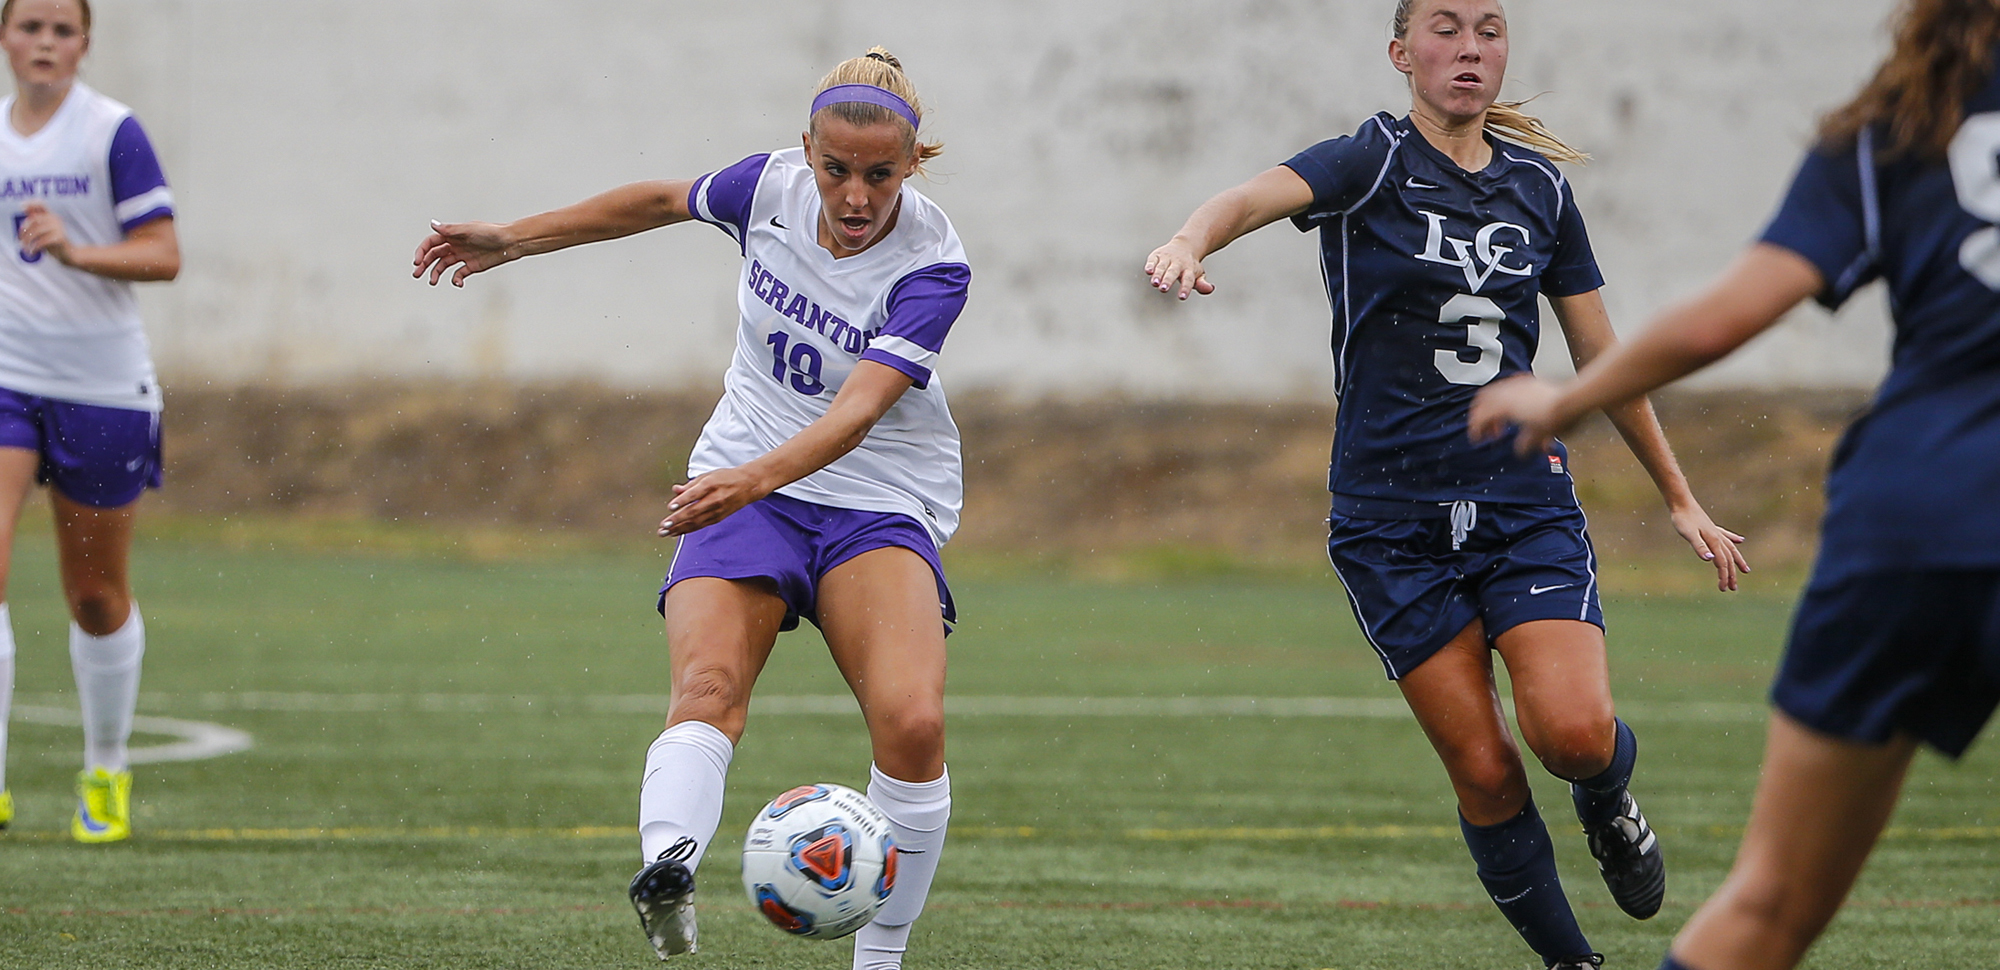 Junior Jamie Hreniuk had a first-half hat trick in the Royals' win over Marywood on Wednesday night.